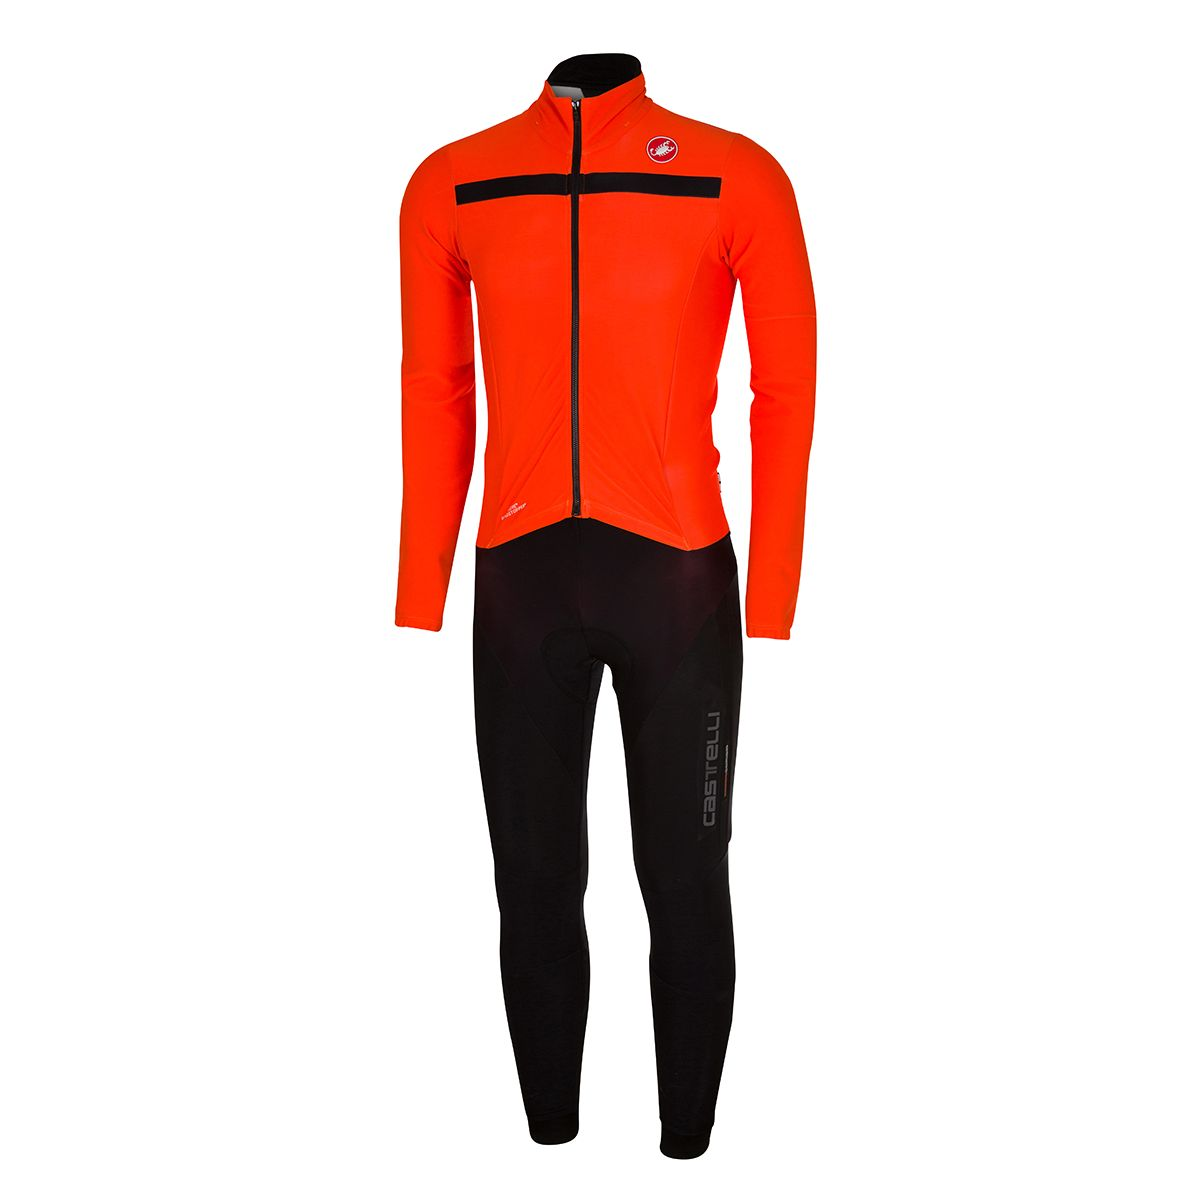 SANREMO 3 THERMOSUIT winter speed suit